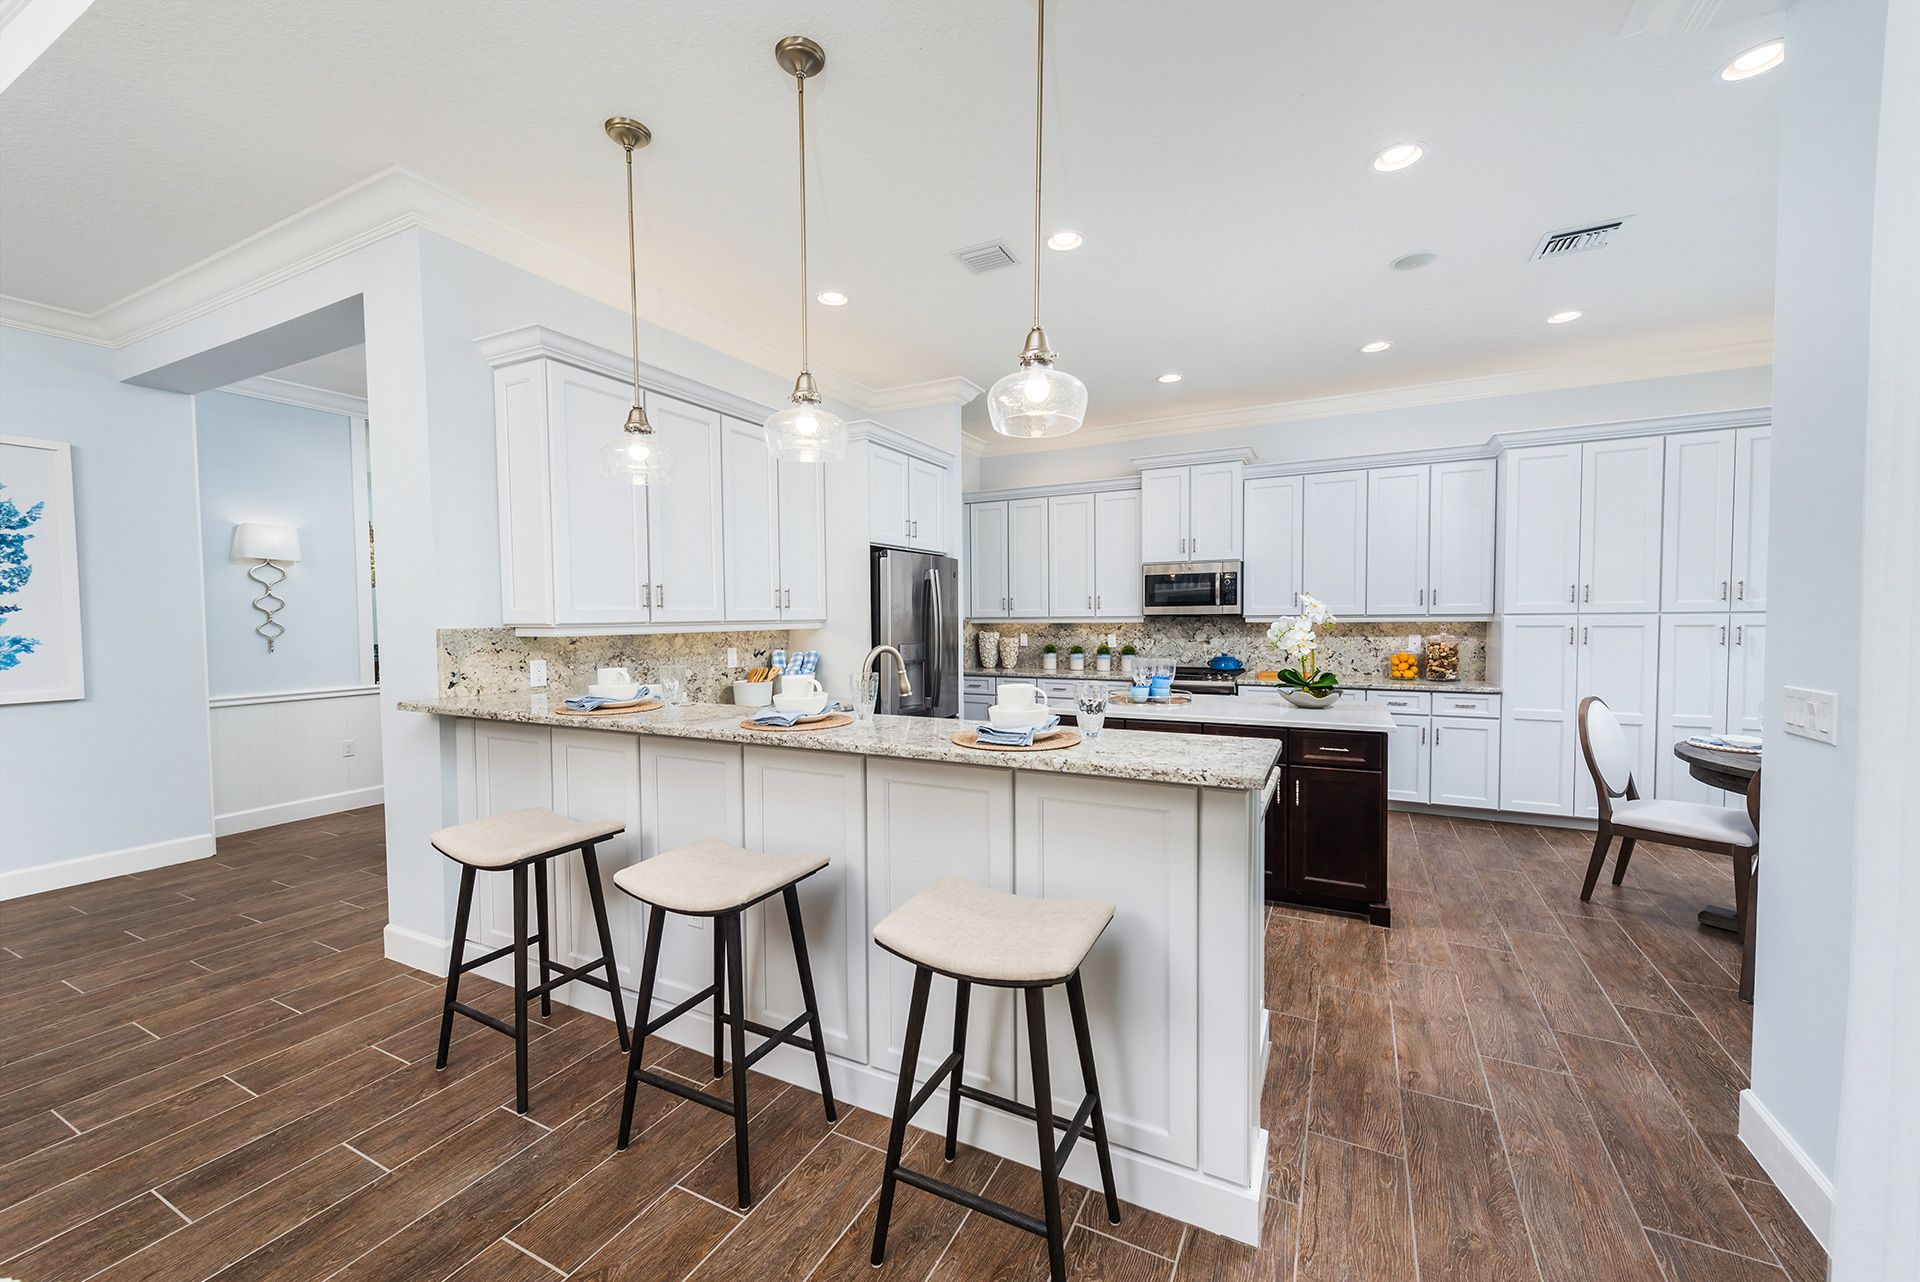 Kitchen featured in the Caroline By GL Homes in Martin-St. Lucie-Okeechobee Counties, FL